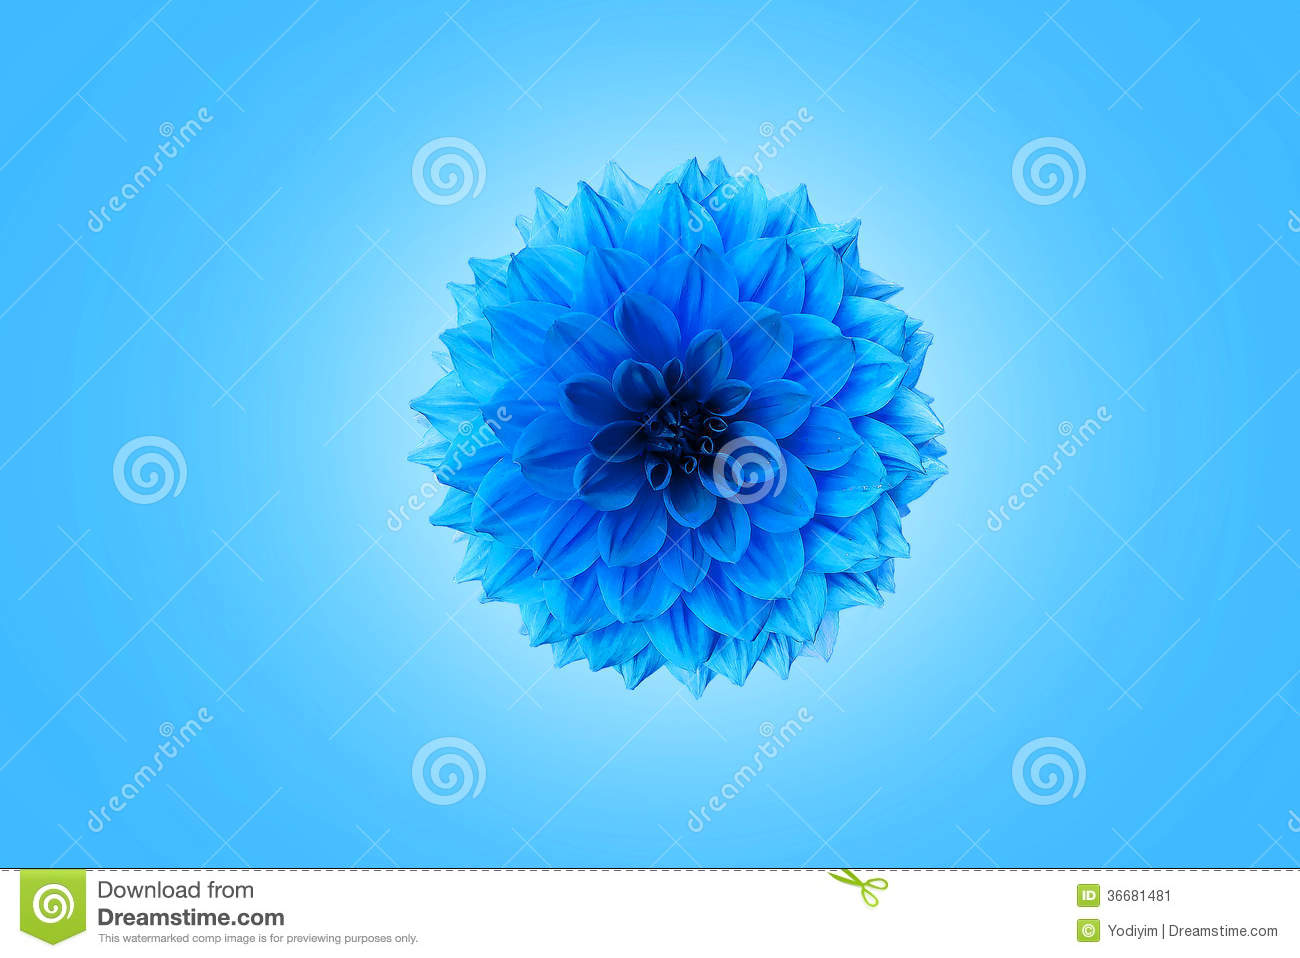 Blue Chrysanthemum Stock Image - Image: 36681481